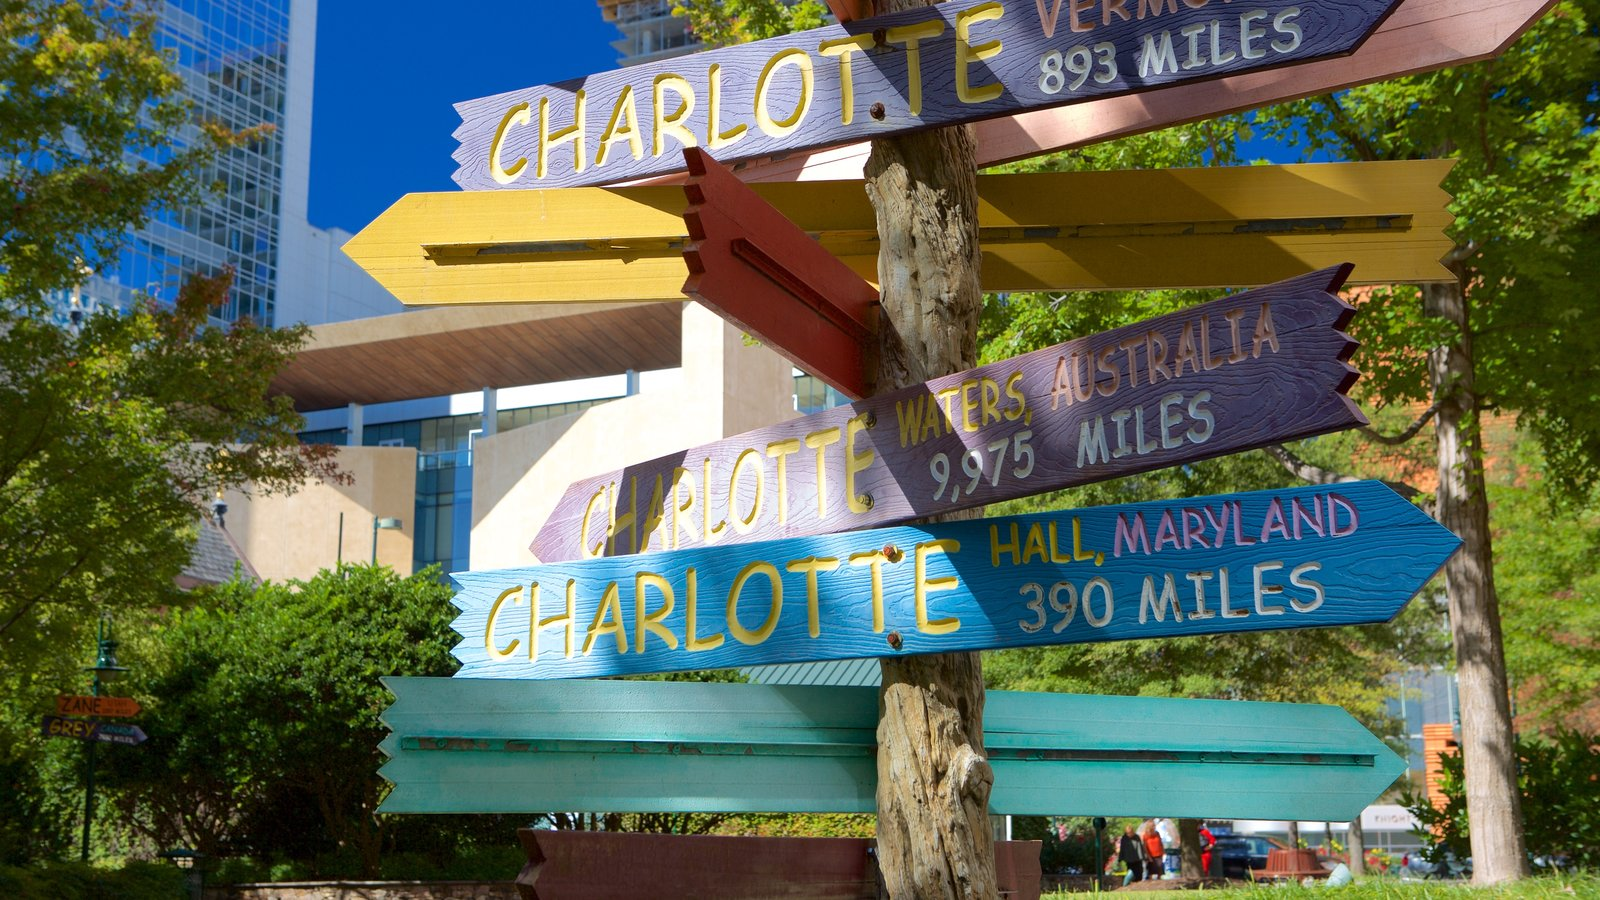 Charlotte which includes outdoor art, a park and signage